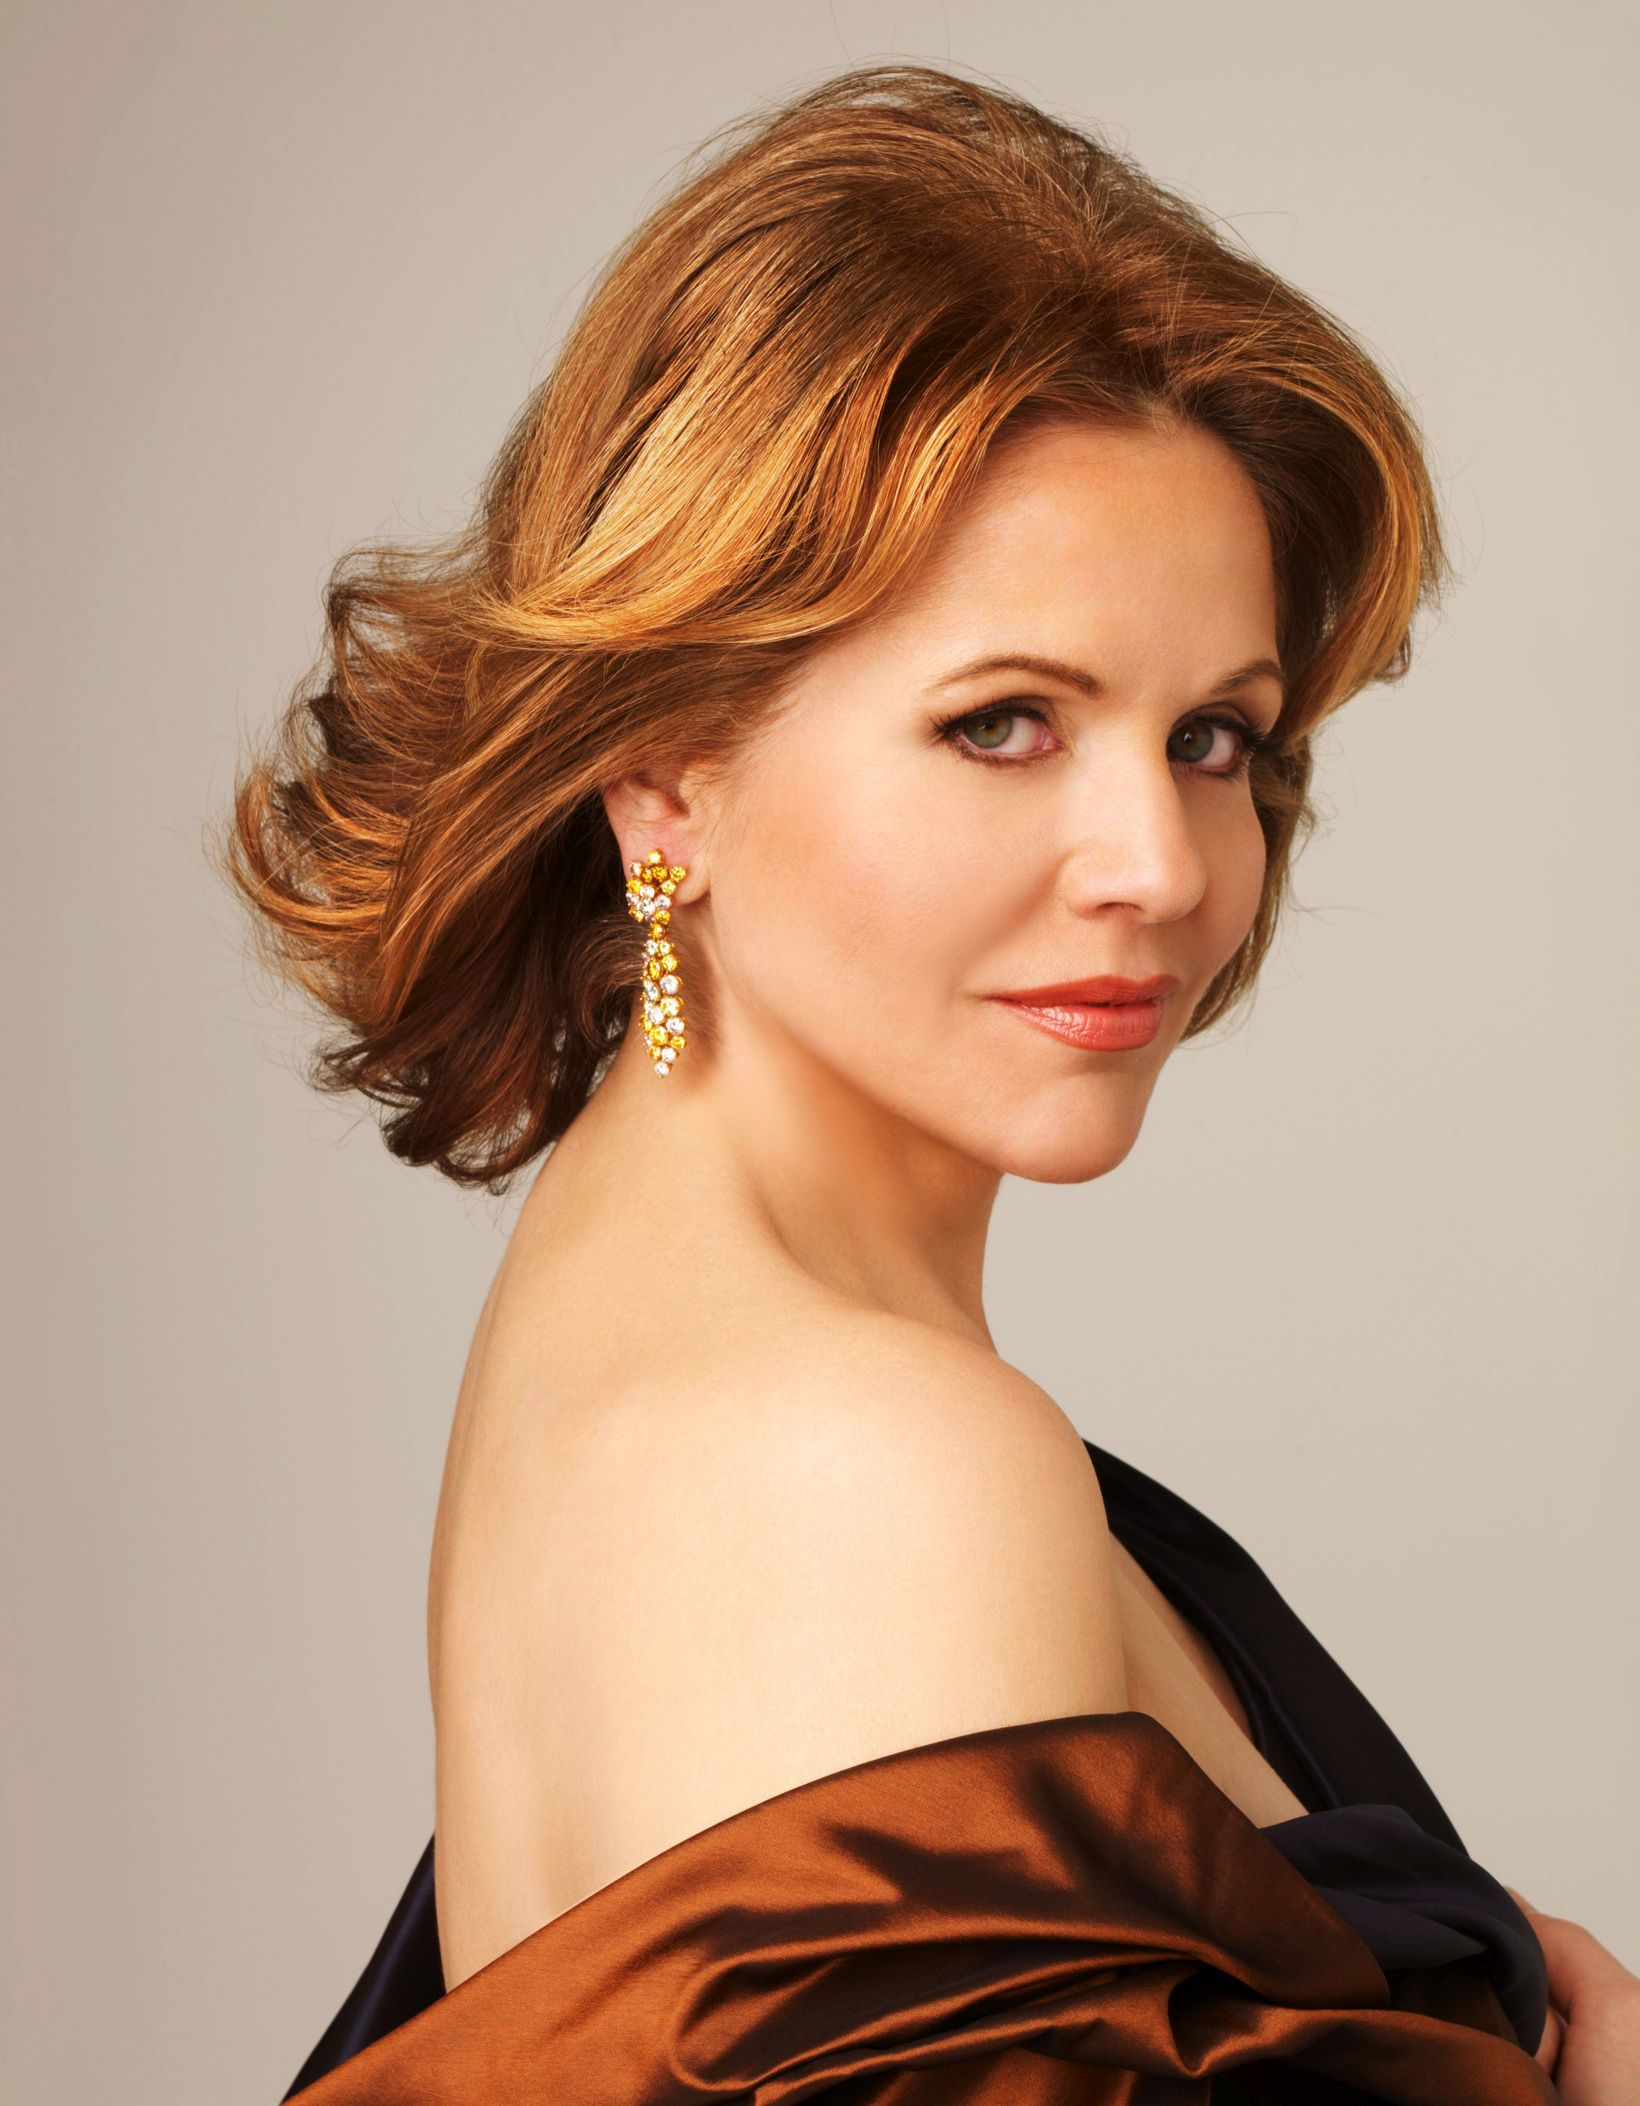 Renée Fleming, America?s sweetheart, singing German Jewish composers of art songs at Carnegie Hall, January 11.